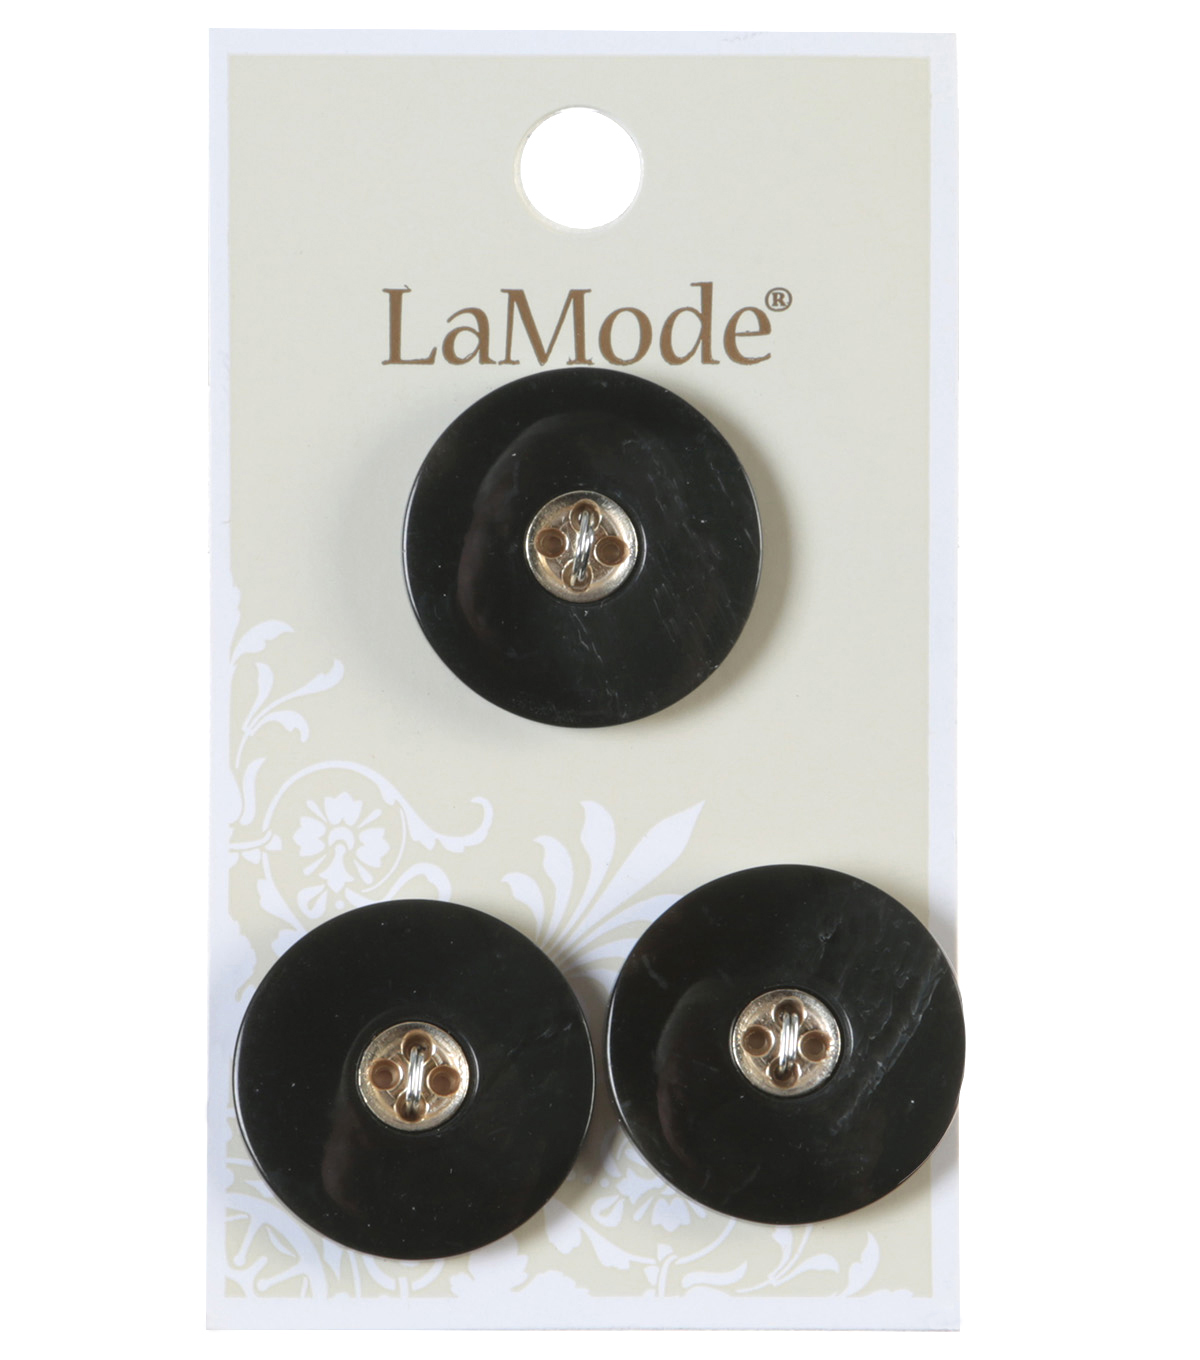 LaMode 4 Hole Grey And Gold Buttons